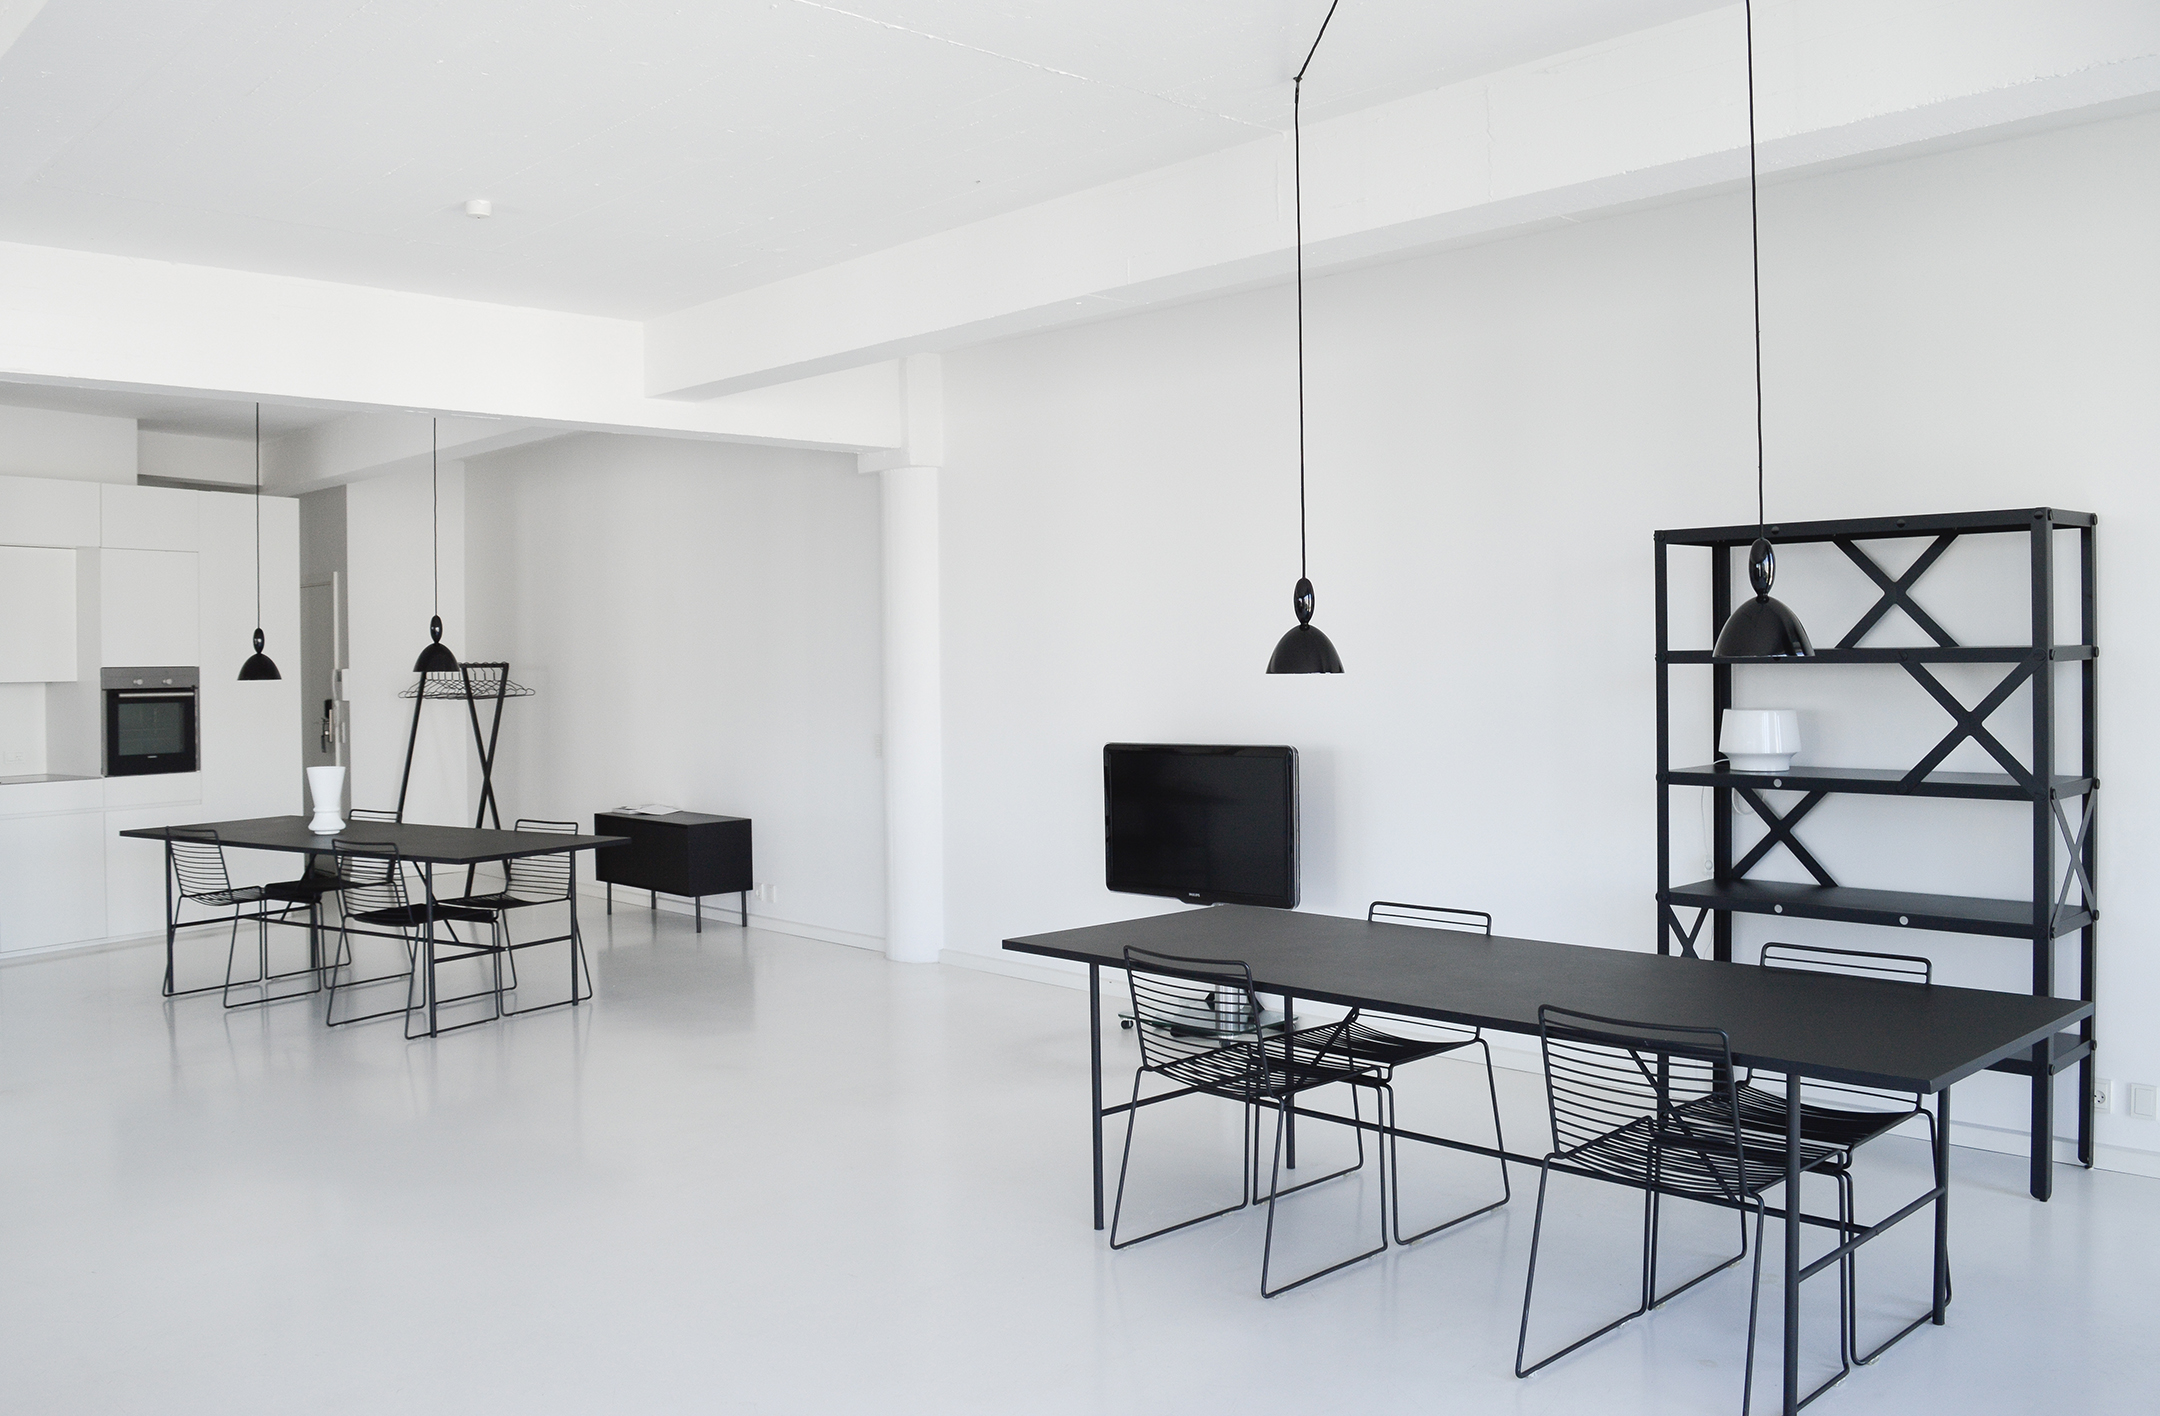 Back Again At The Wonderful Design Hotel Stay Copenhagen, For This Visit I  Booked The Impressive Atelier XL Apartment. I Previously Stayed In The  Copenhagen ...